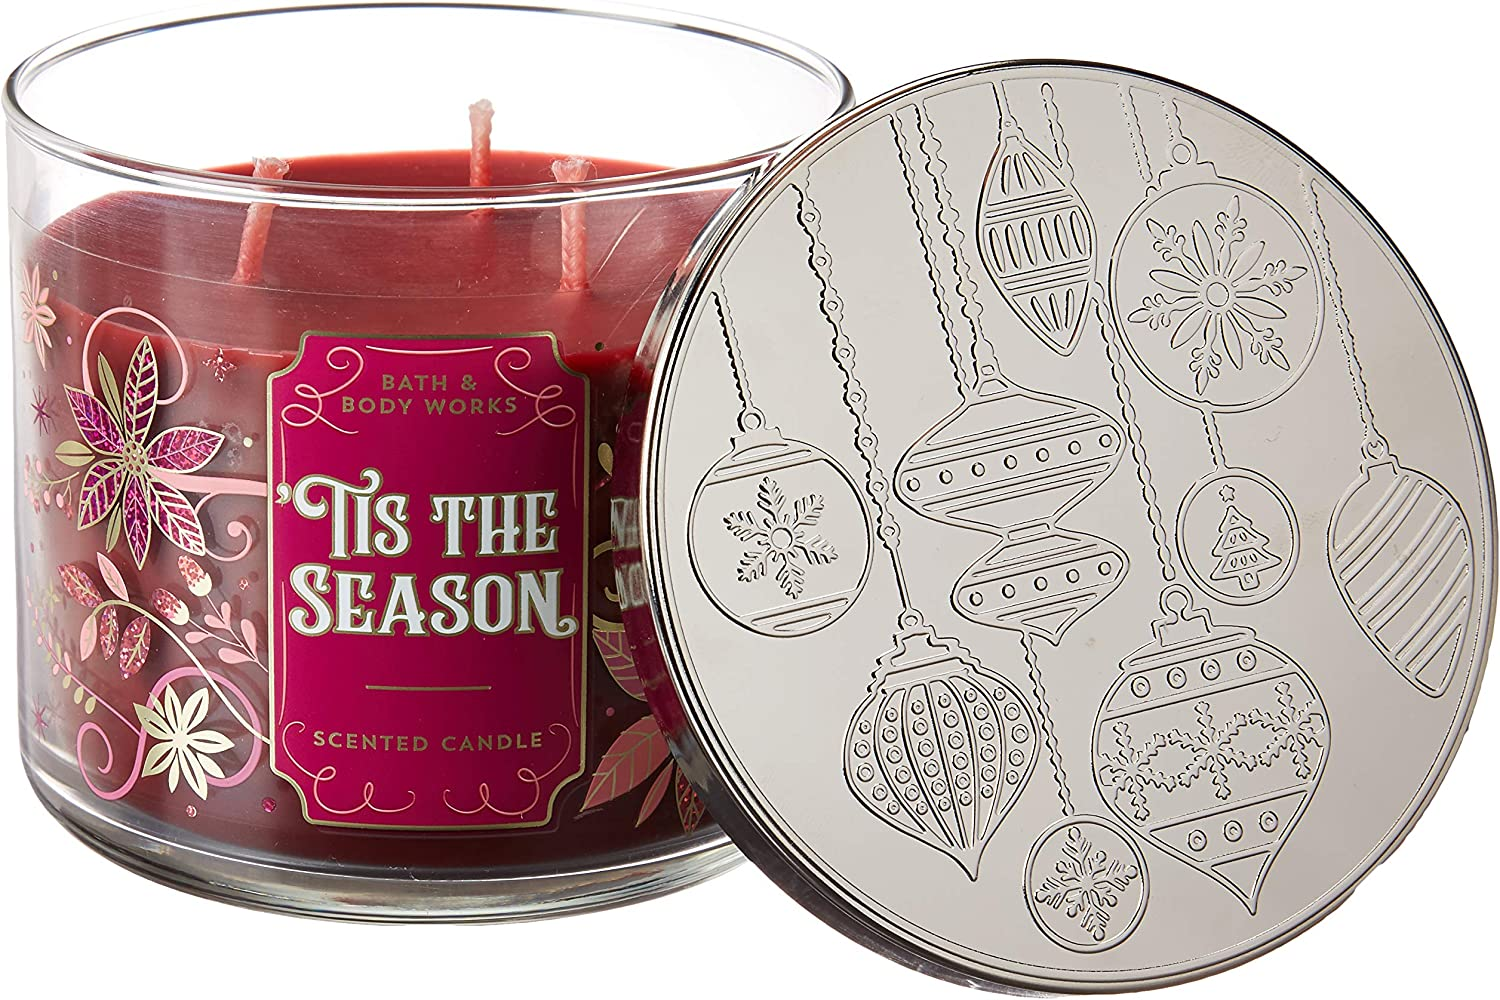 Bath and Body Works White Barn Tis the Season 3 Wick Candle 14.5 Ounce Notes: Rich Red Apple, Cinnamon, Cedarwood